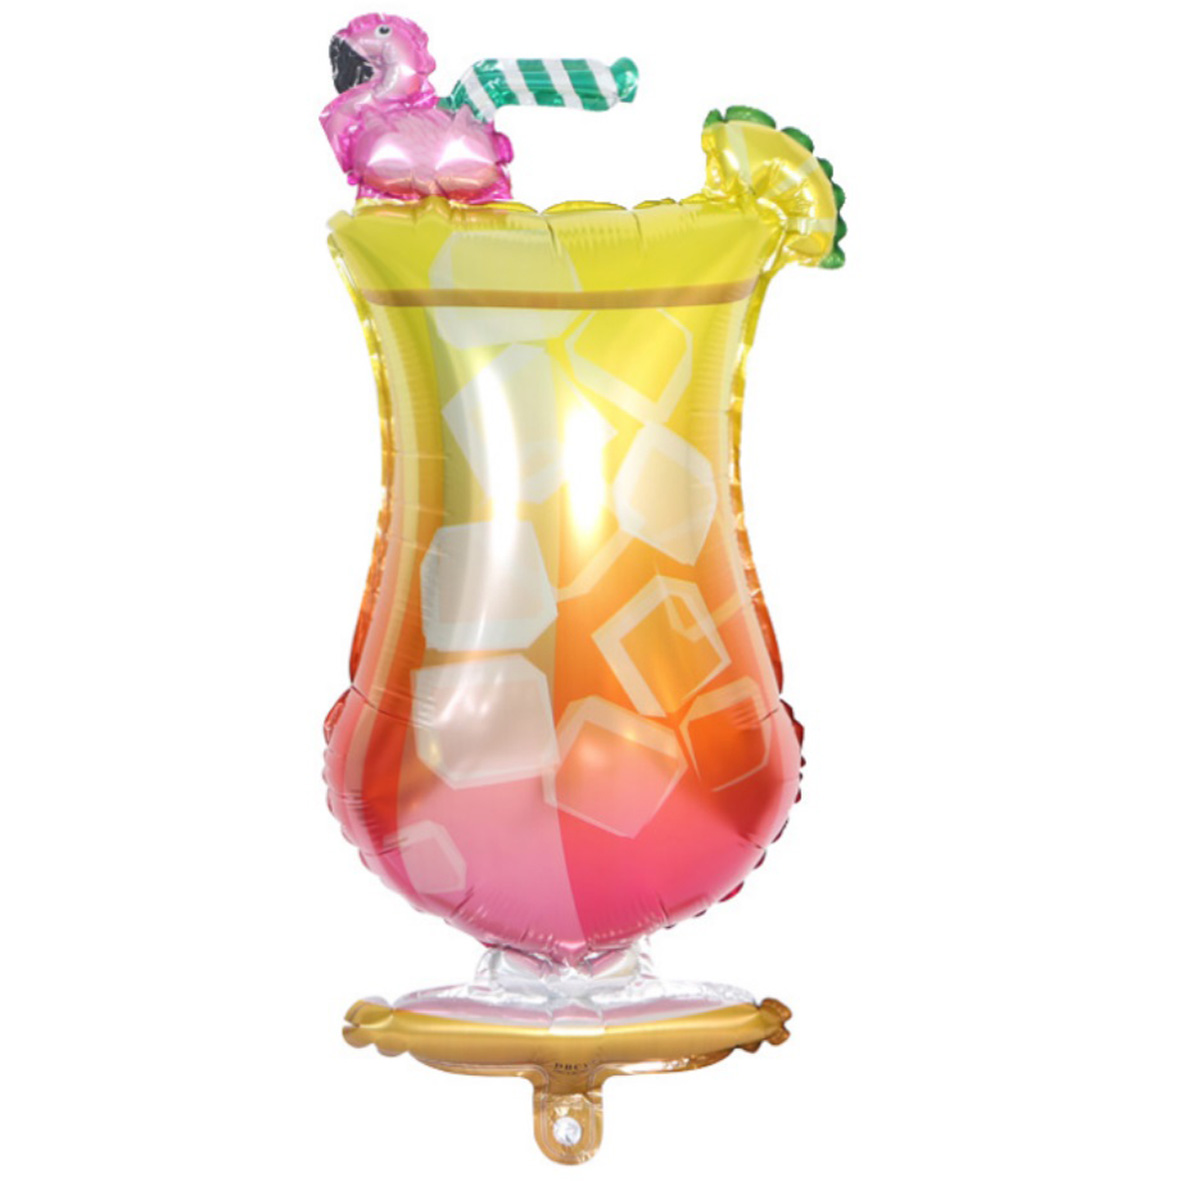 GL-ELY1100 Inflatable Holiday Flamingo Balloon